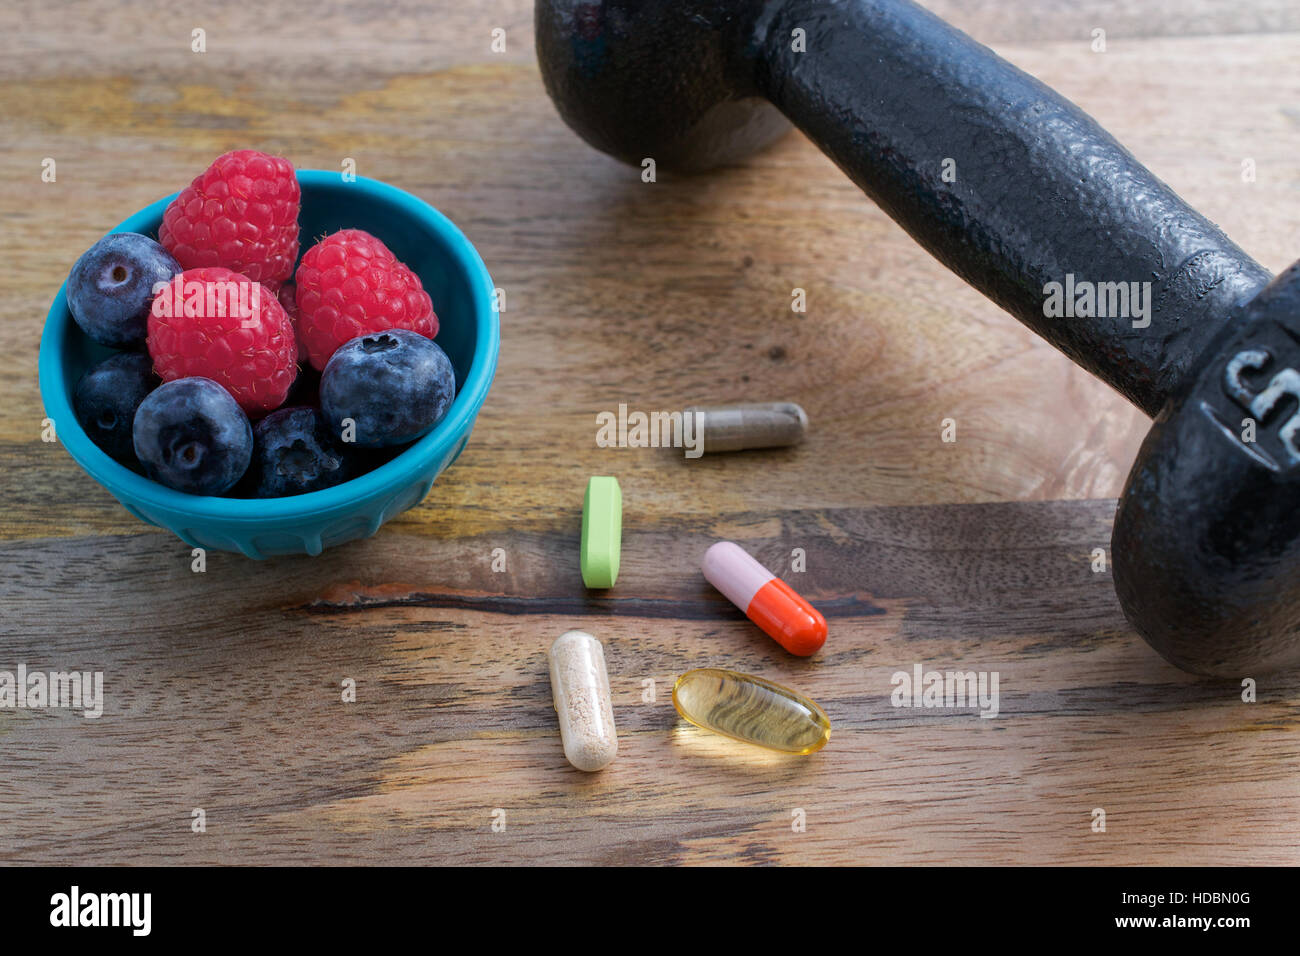 Dumbbell, berries and dietary supplements on wooden background: Fitness and weight loss concept. - Stock Image